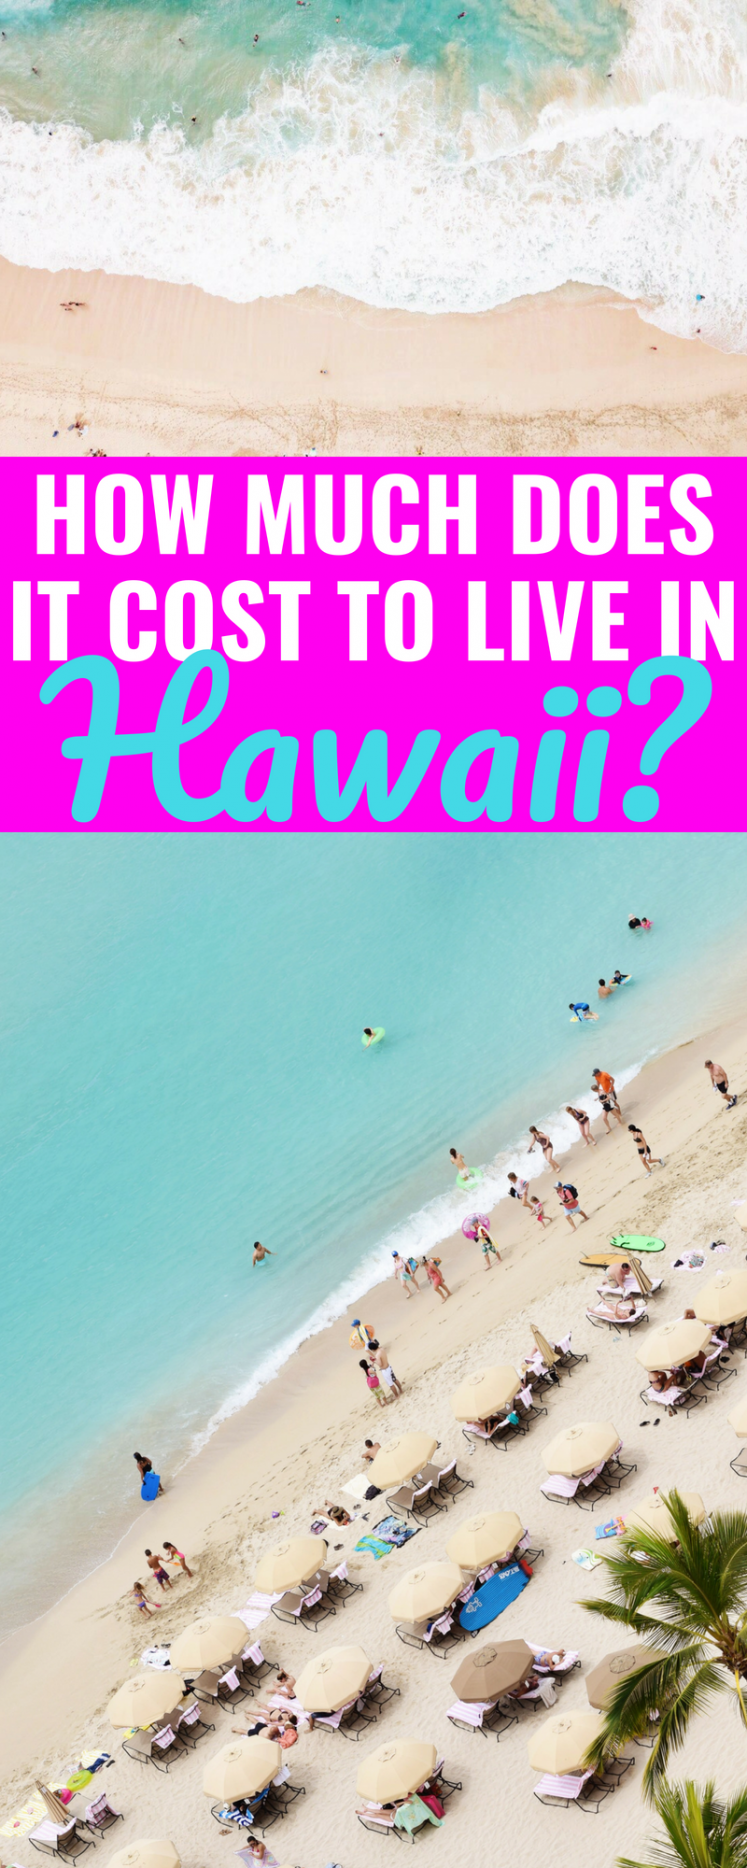 How Much Does It Cost To Live In Hawaii?